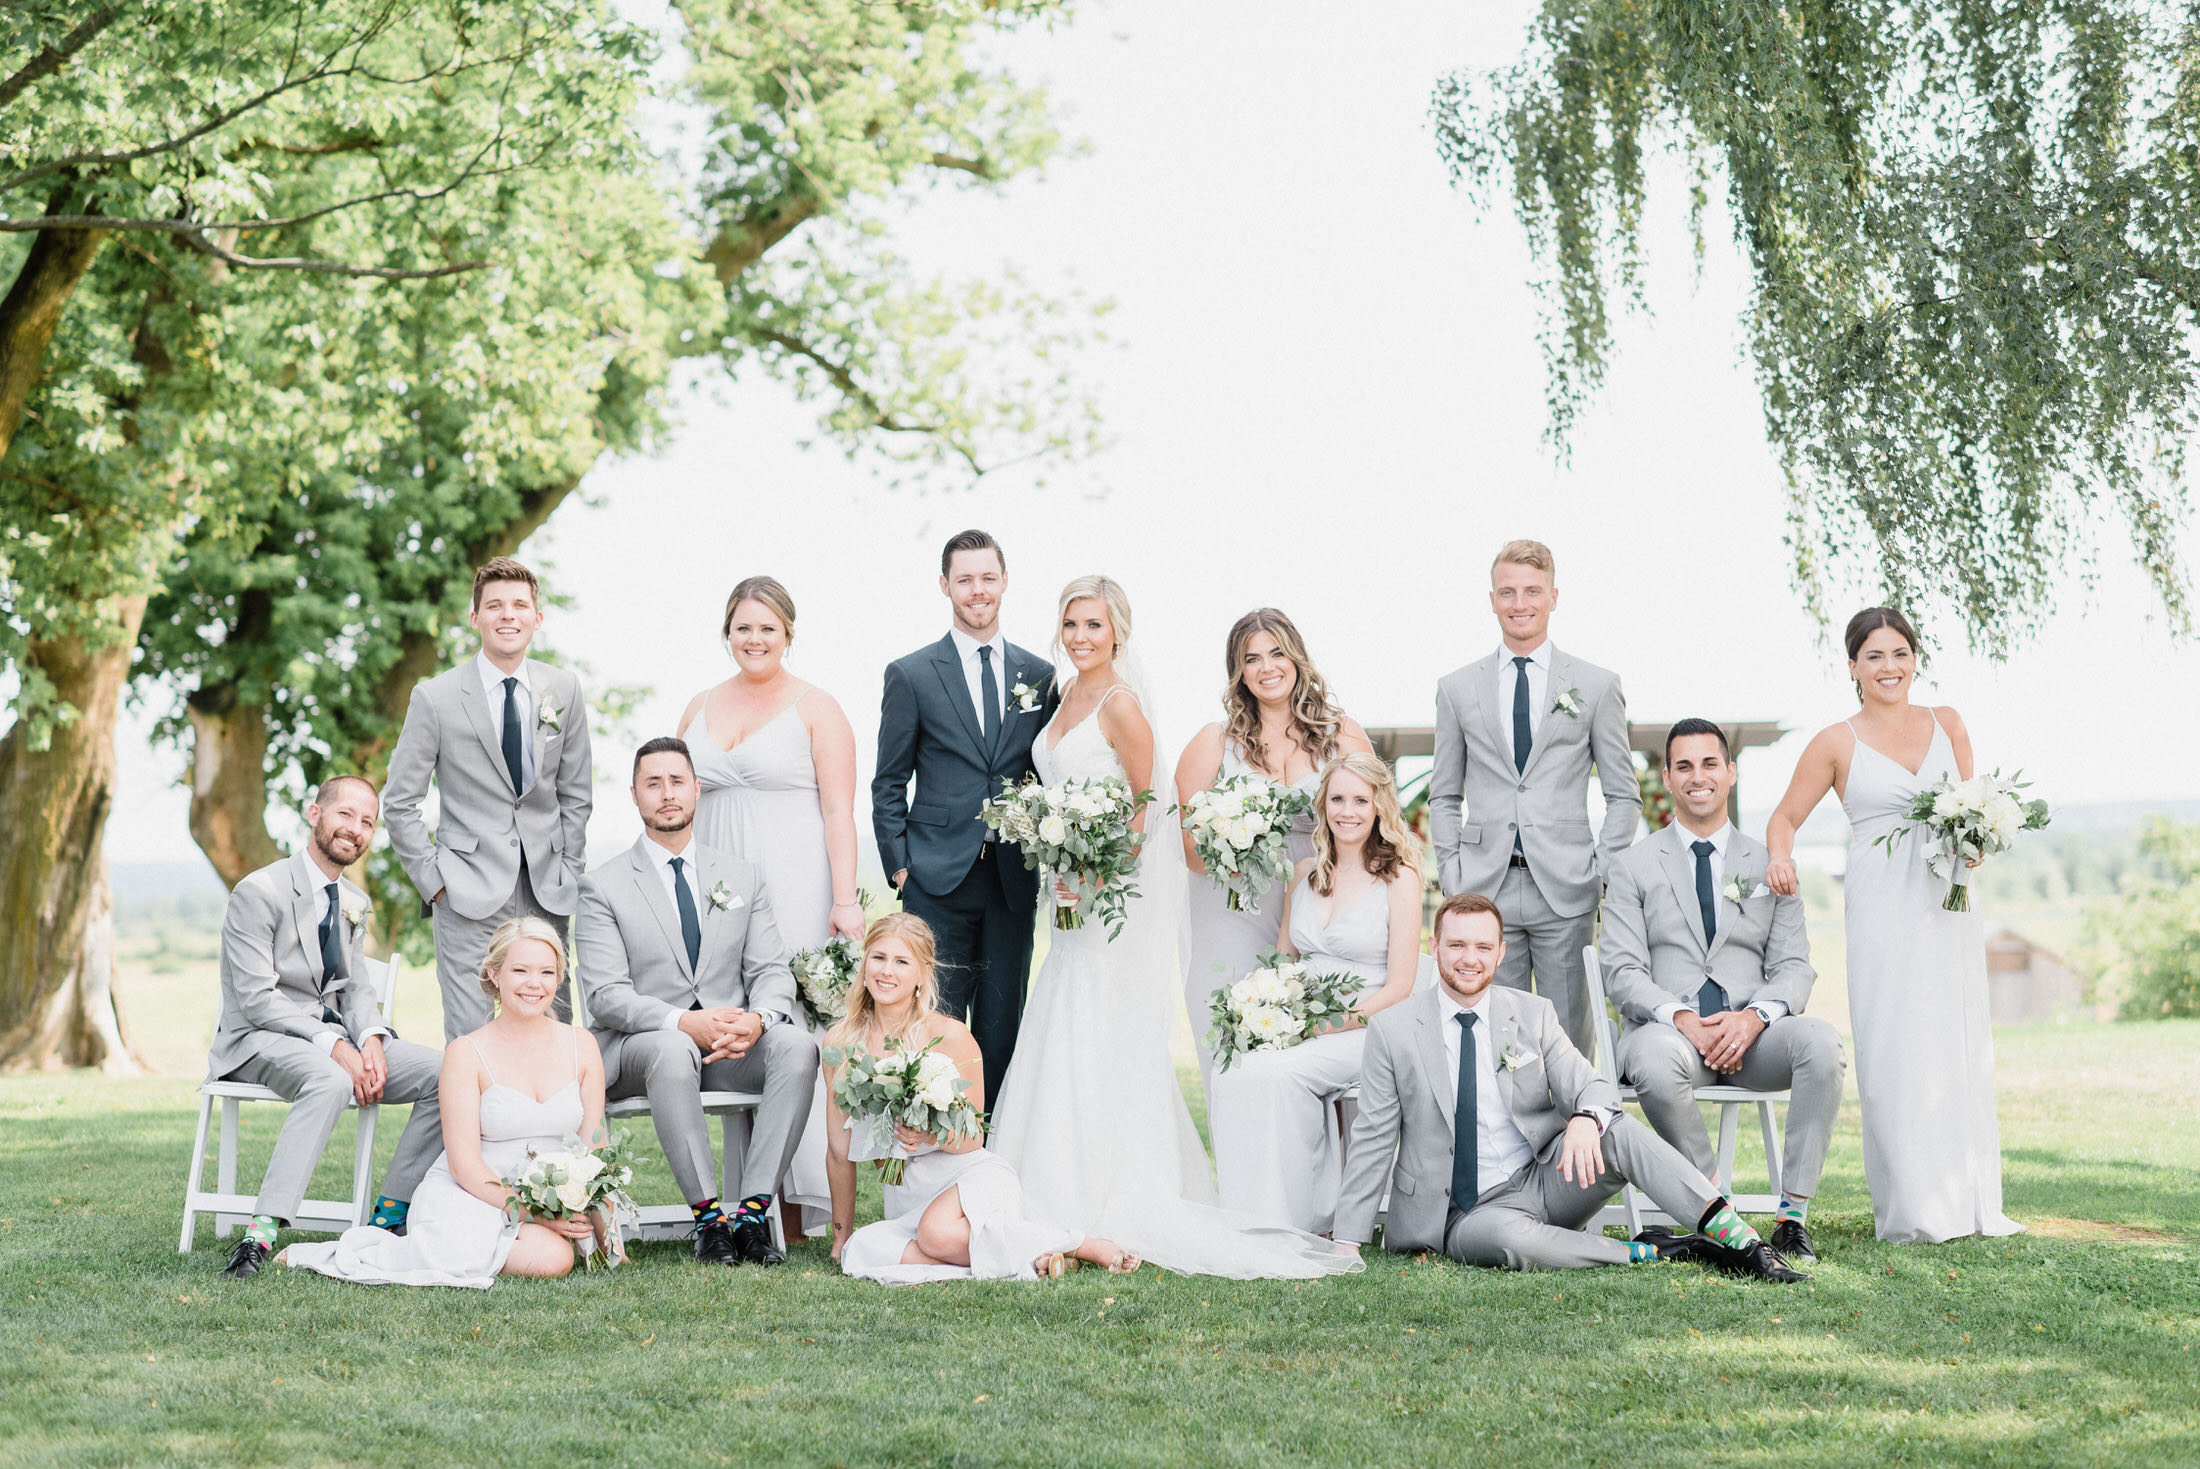 Wedding photography by the talented     Jenn Kavanagh Photography     at   Earth to Table: The Farm